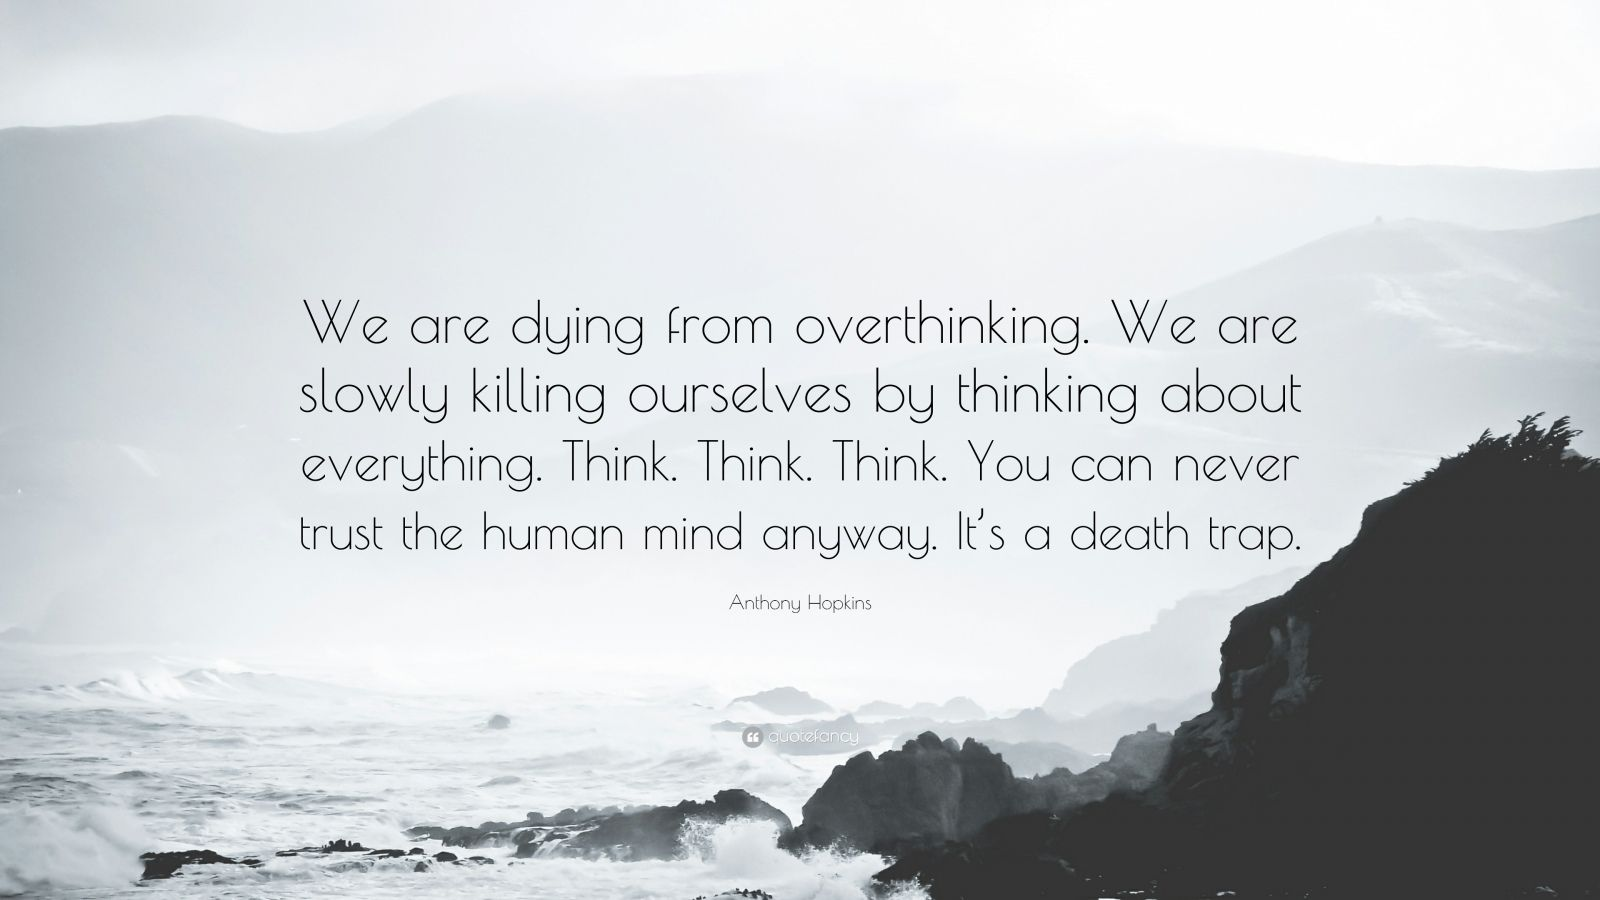 """Anthony Hopkins Quote: """"We are dying from overthinking. We are slowly killing ourselves by thinking about everything. Think. Think. Think. You can never trust the human mind anyway. It's a death trap."""""""